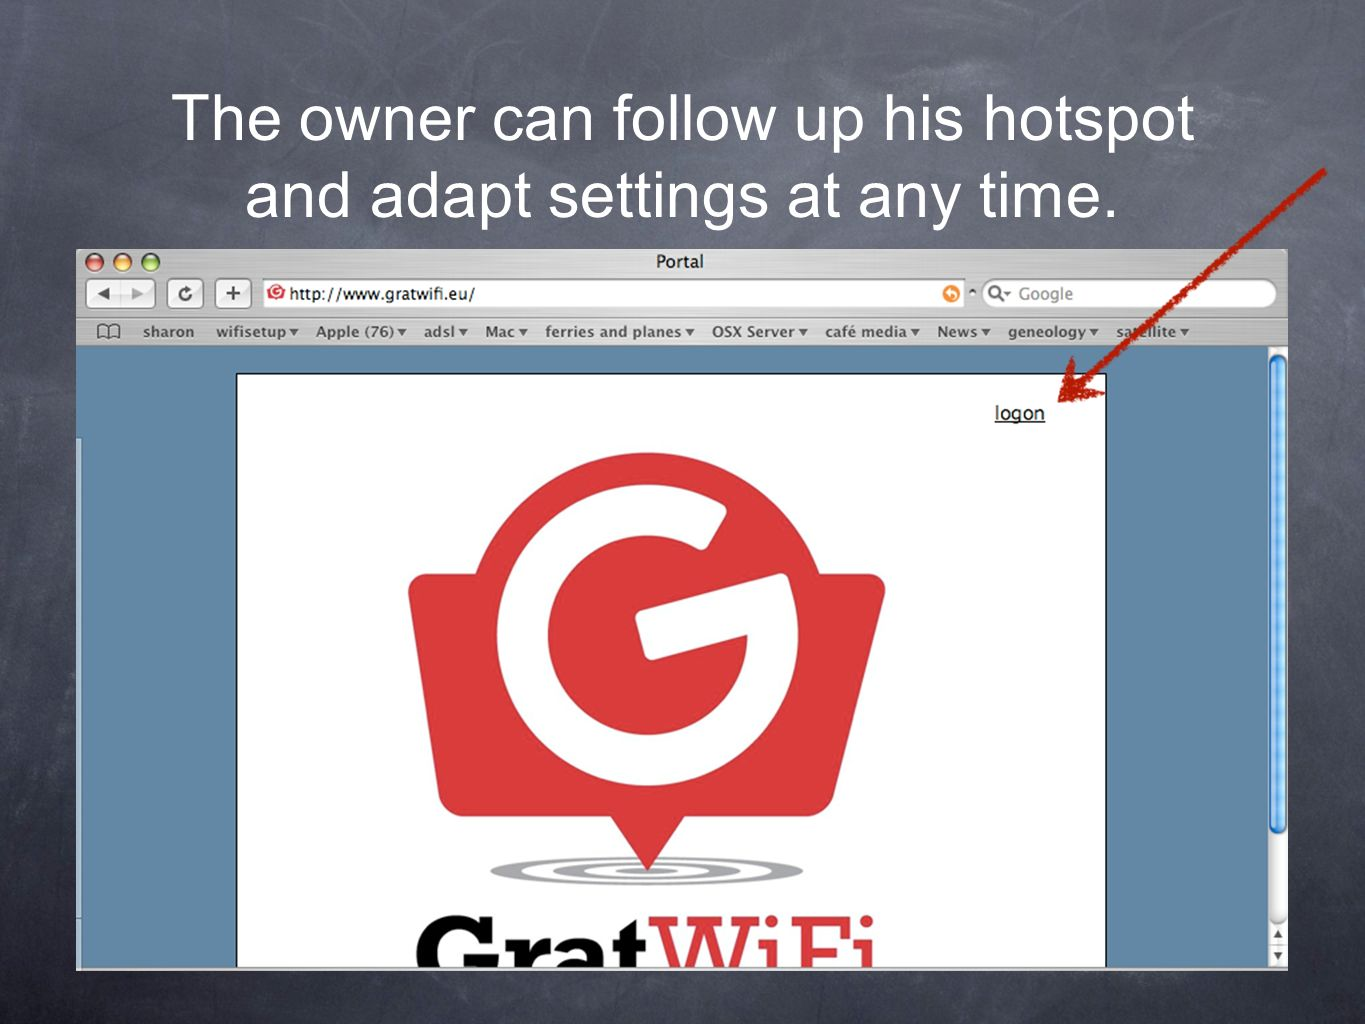 The owner can follow up his hotspot and adapt settings at any time.